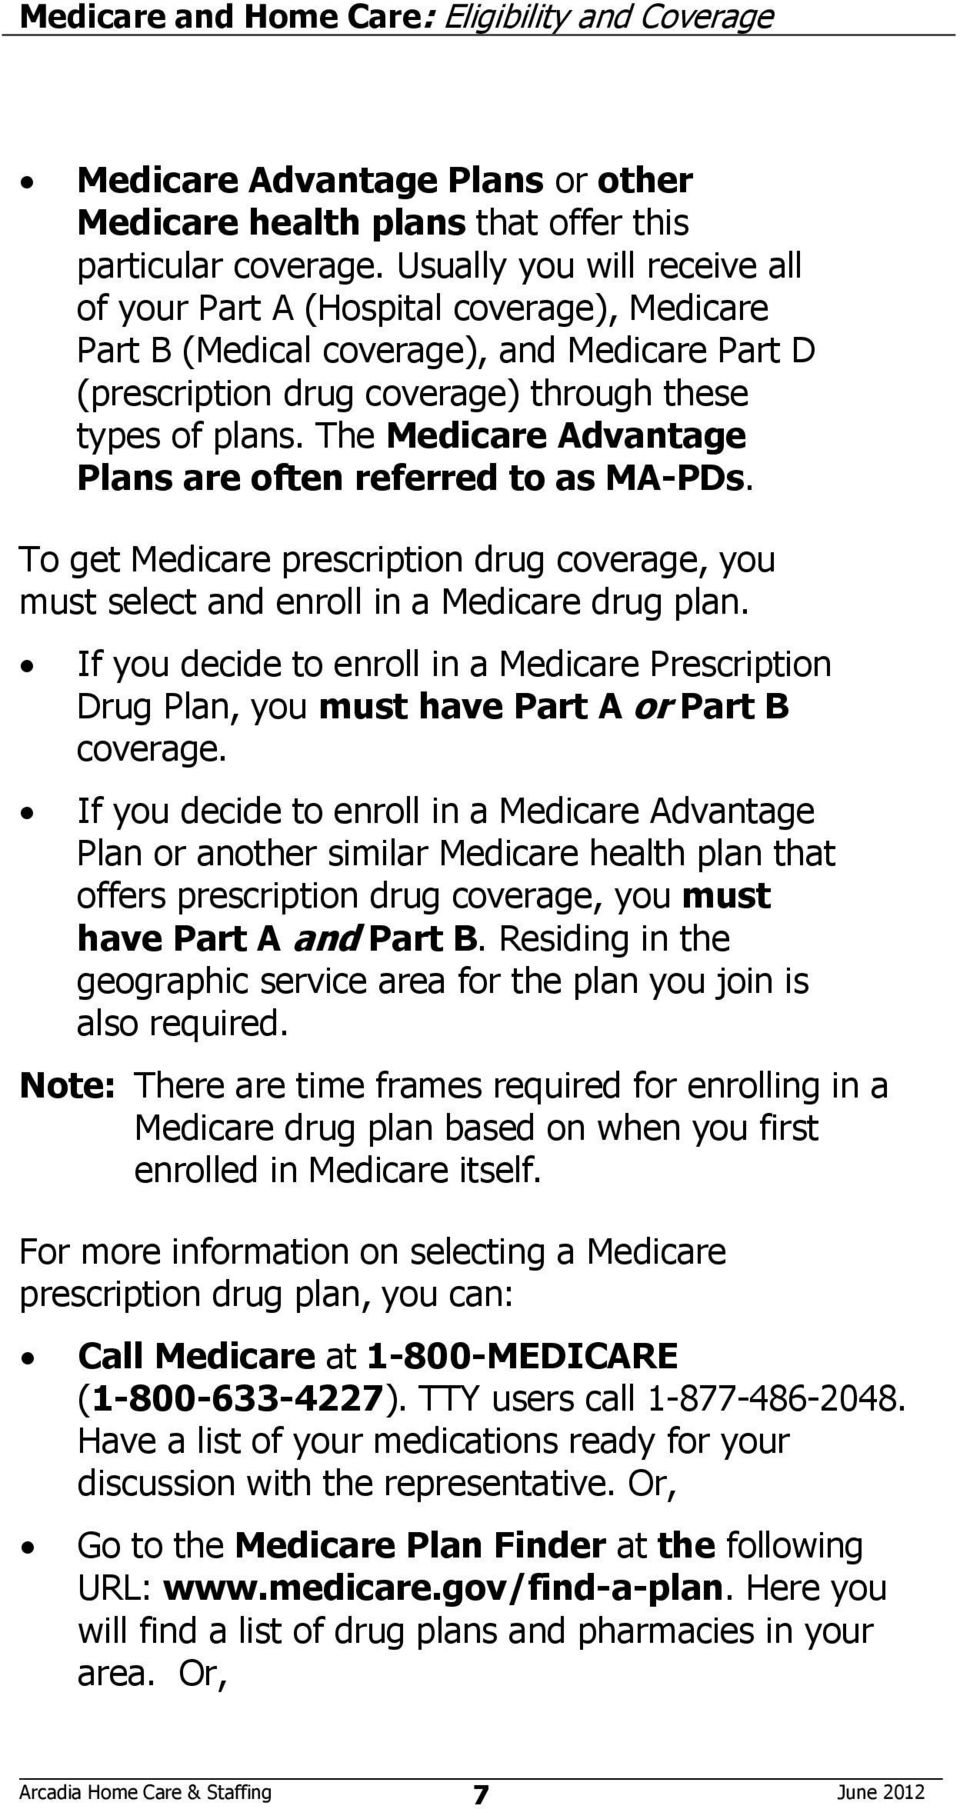 The Medicare Advantage Plans are often referred to as MA-PDs. To get Medicare prescription drug coverage, you must select and enroll in a Medicare drug plan.